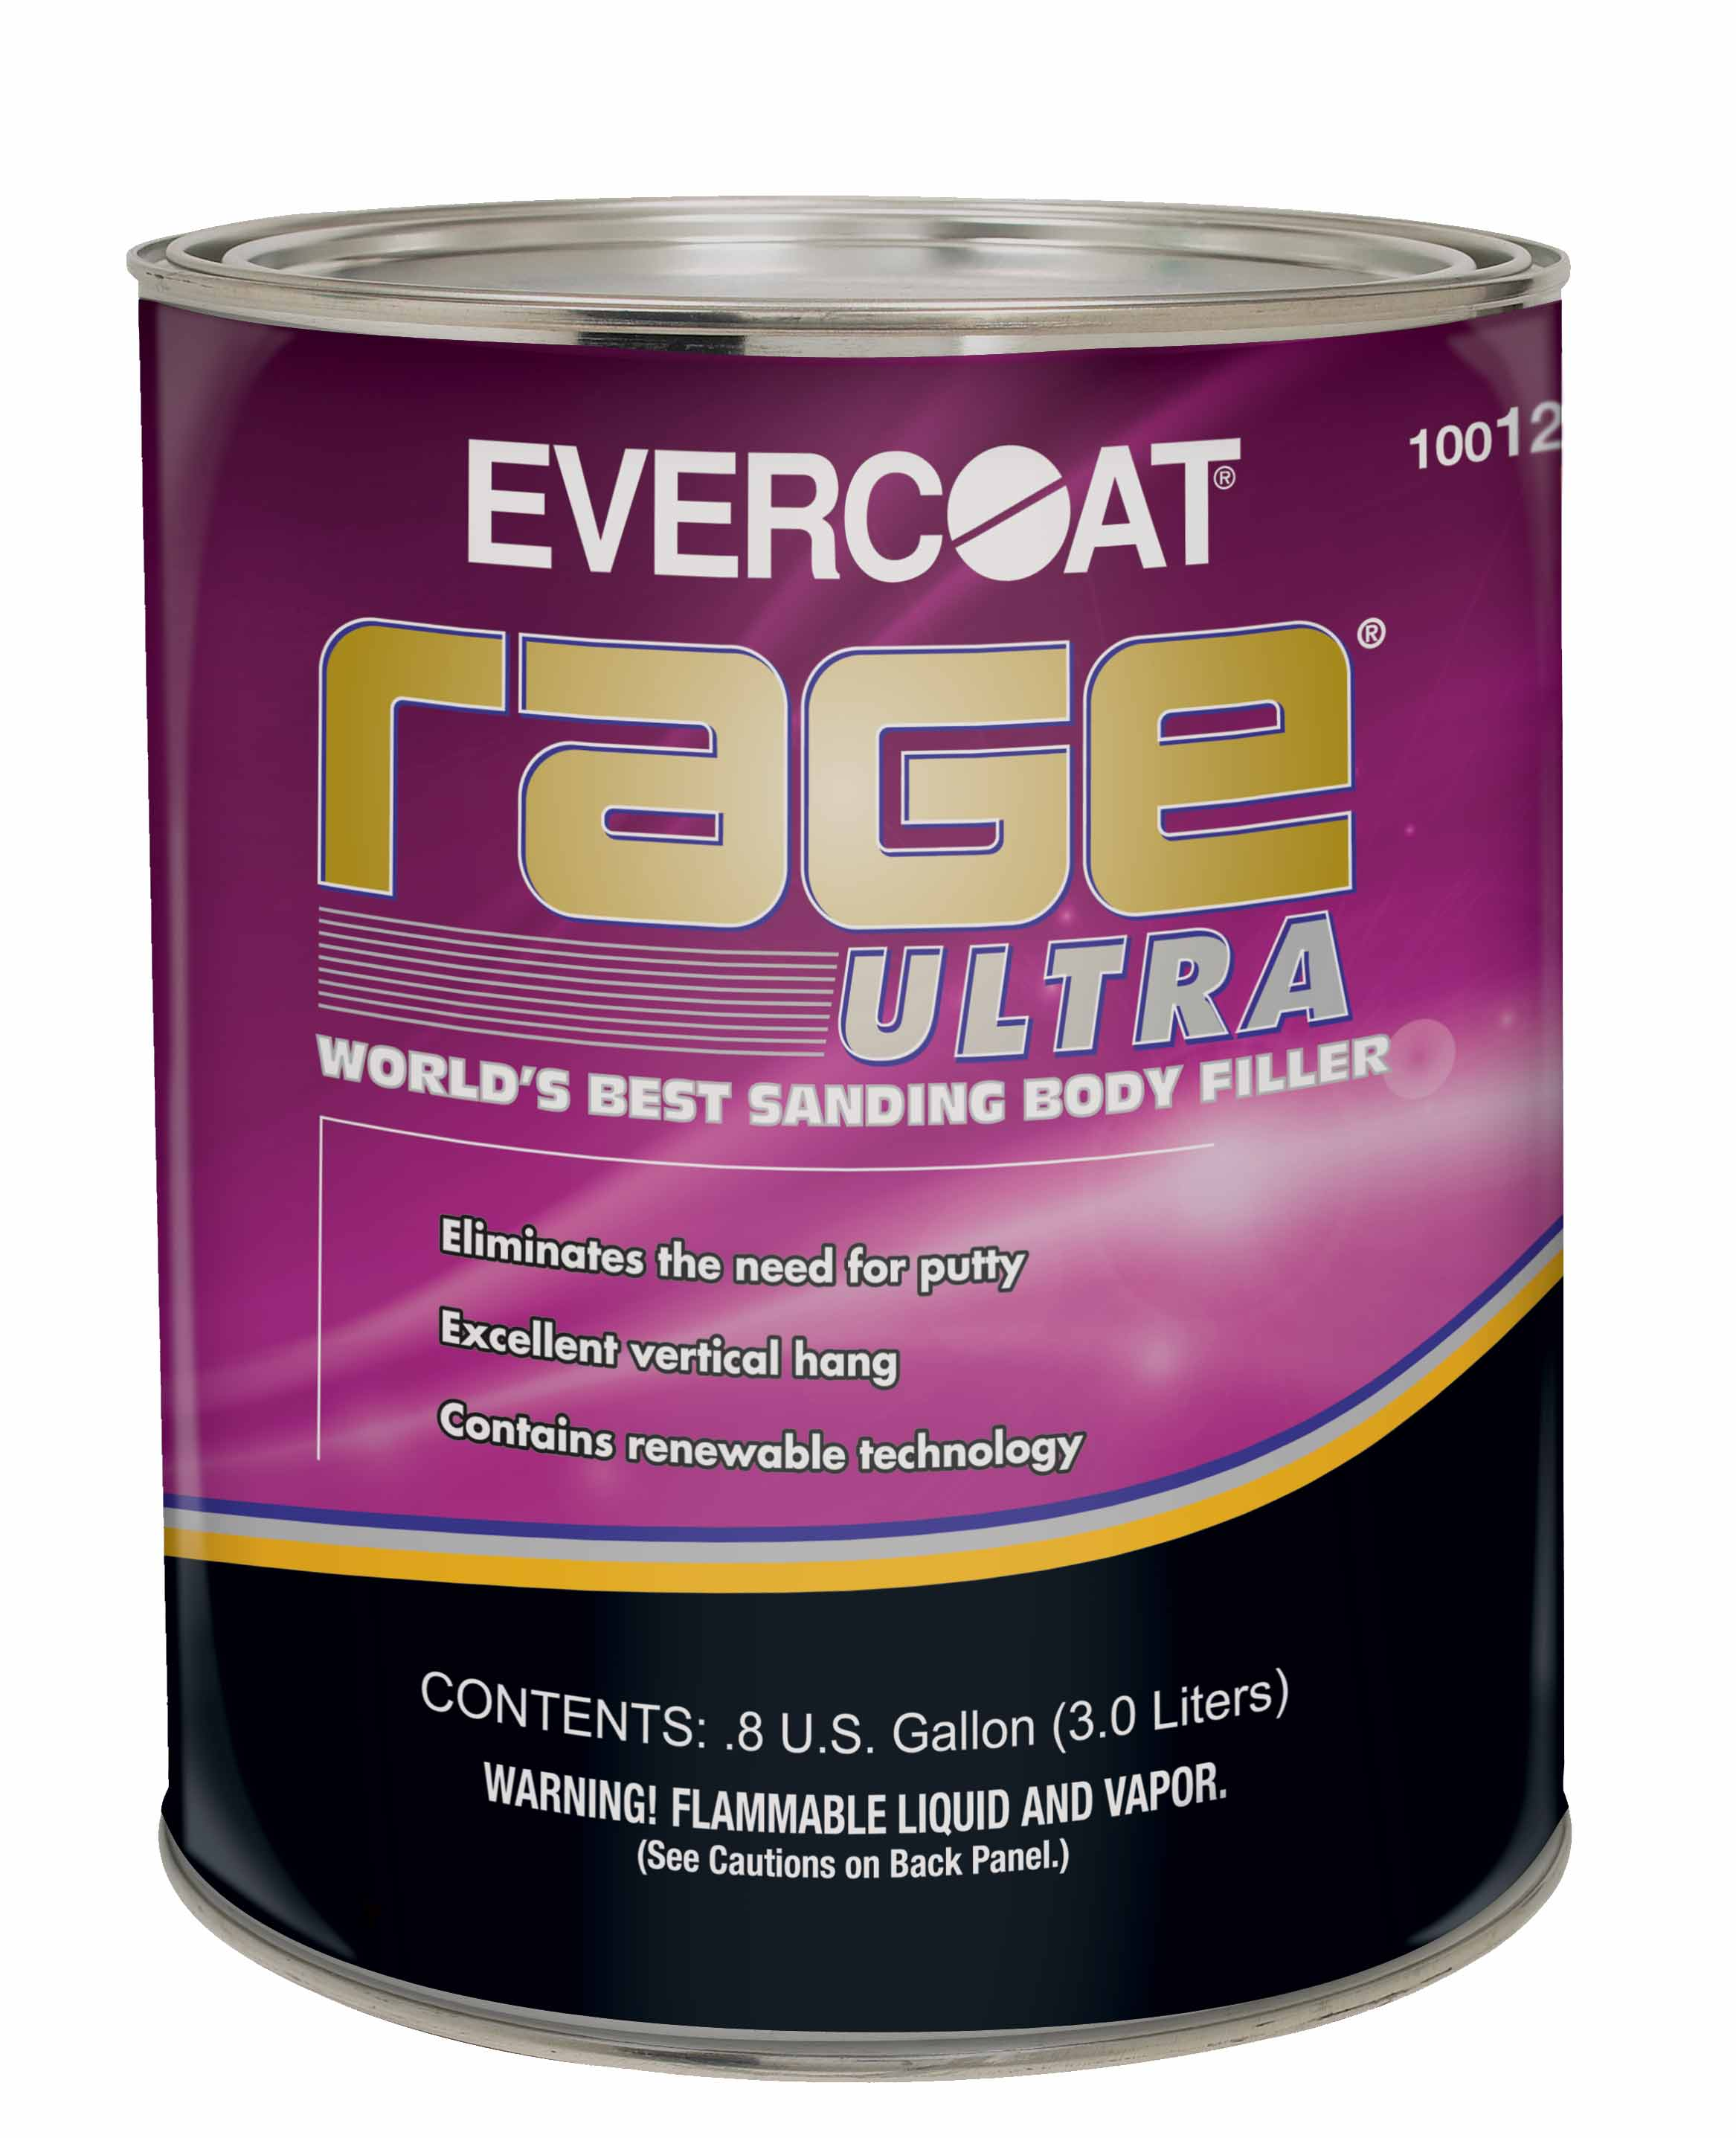 Rage® Ultra is the world's best sanding body filler. Its non-sag formula has excellent filling properties, while eliminating the need for finishing putty.